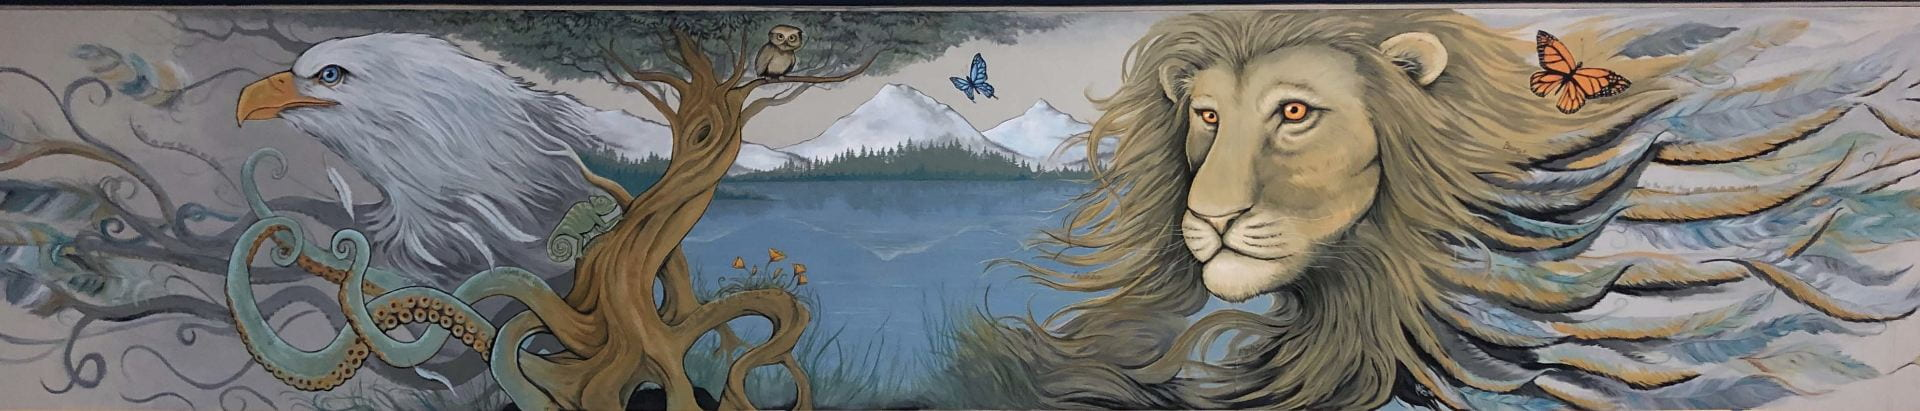 Mount Lassen (mural) created by Micah Spangler, brother of Mark Spangler, Department of Medicine